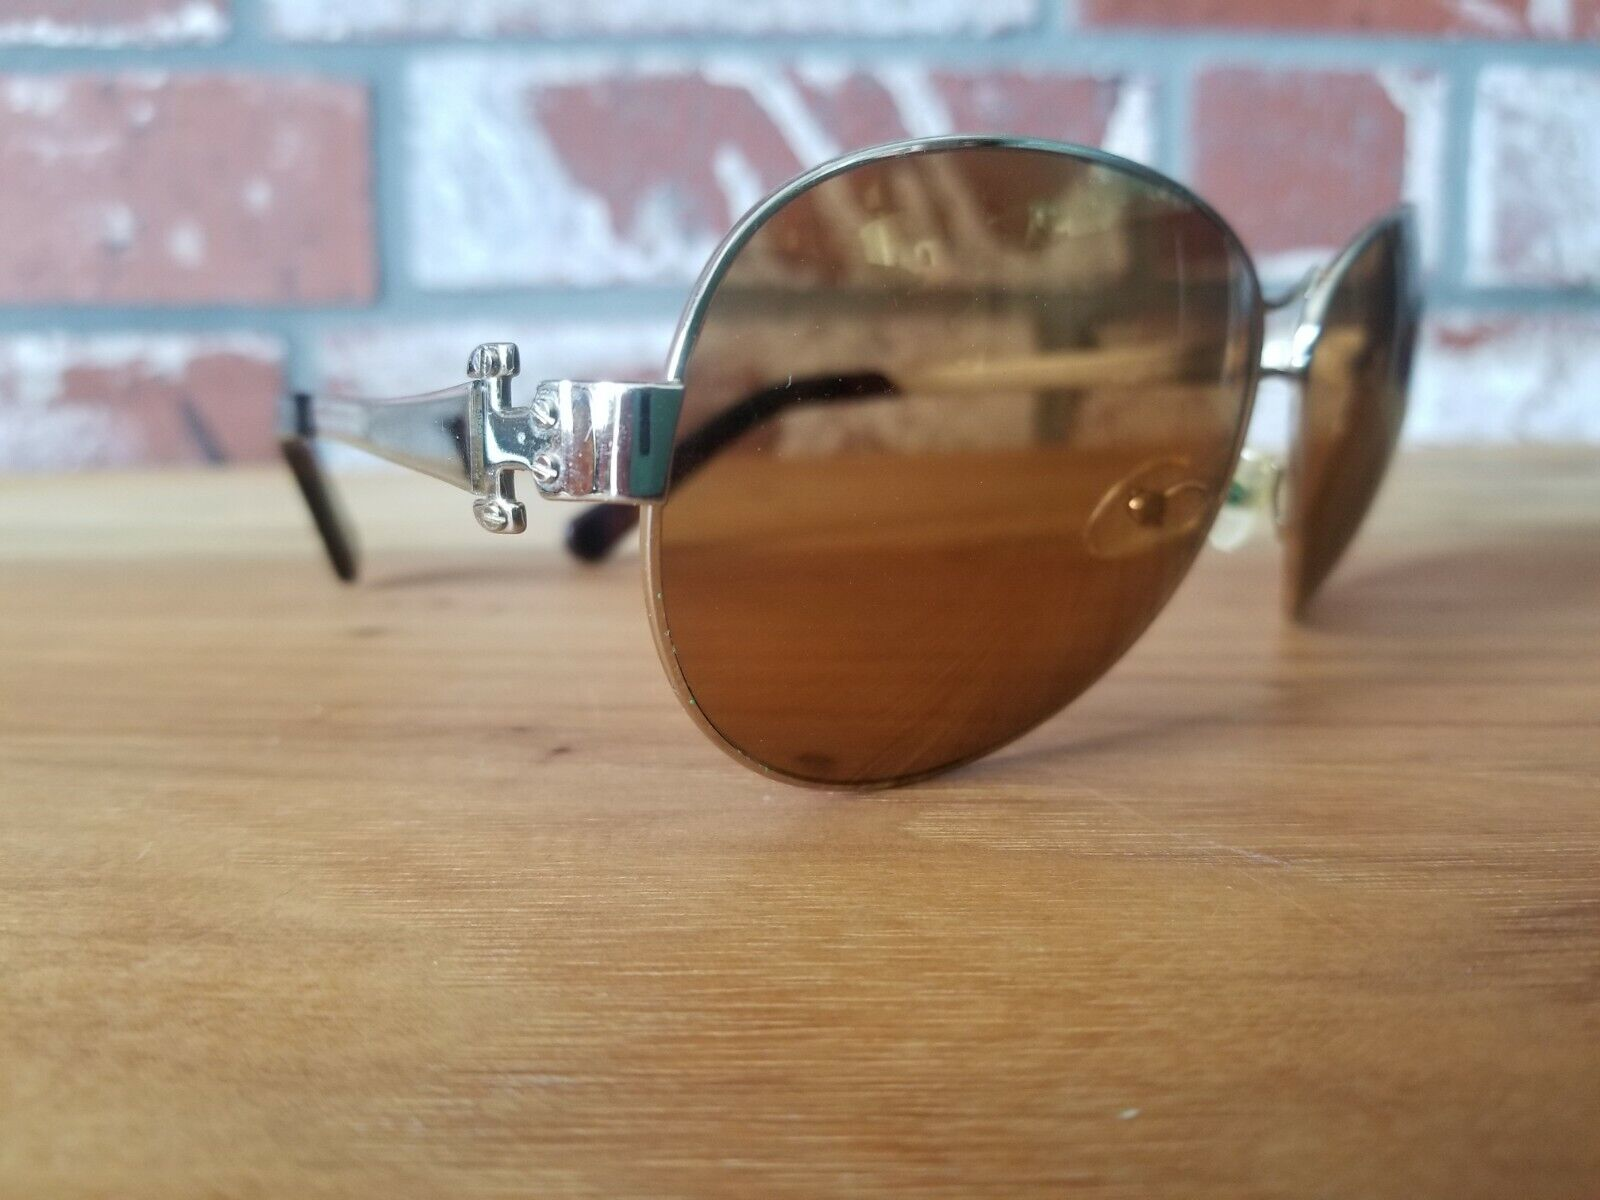 Used TORY BURCH AVIATOR SUNGLASSES gold frame gold mirror lenses TY 6005 101/97